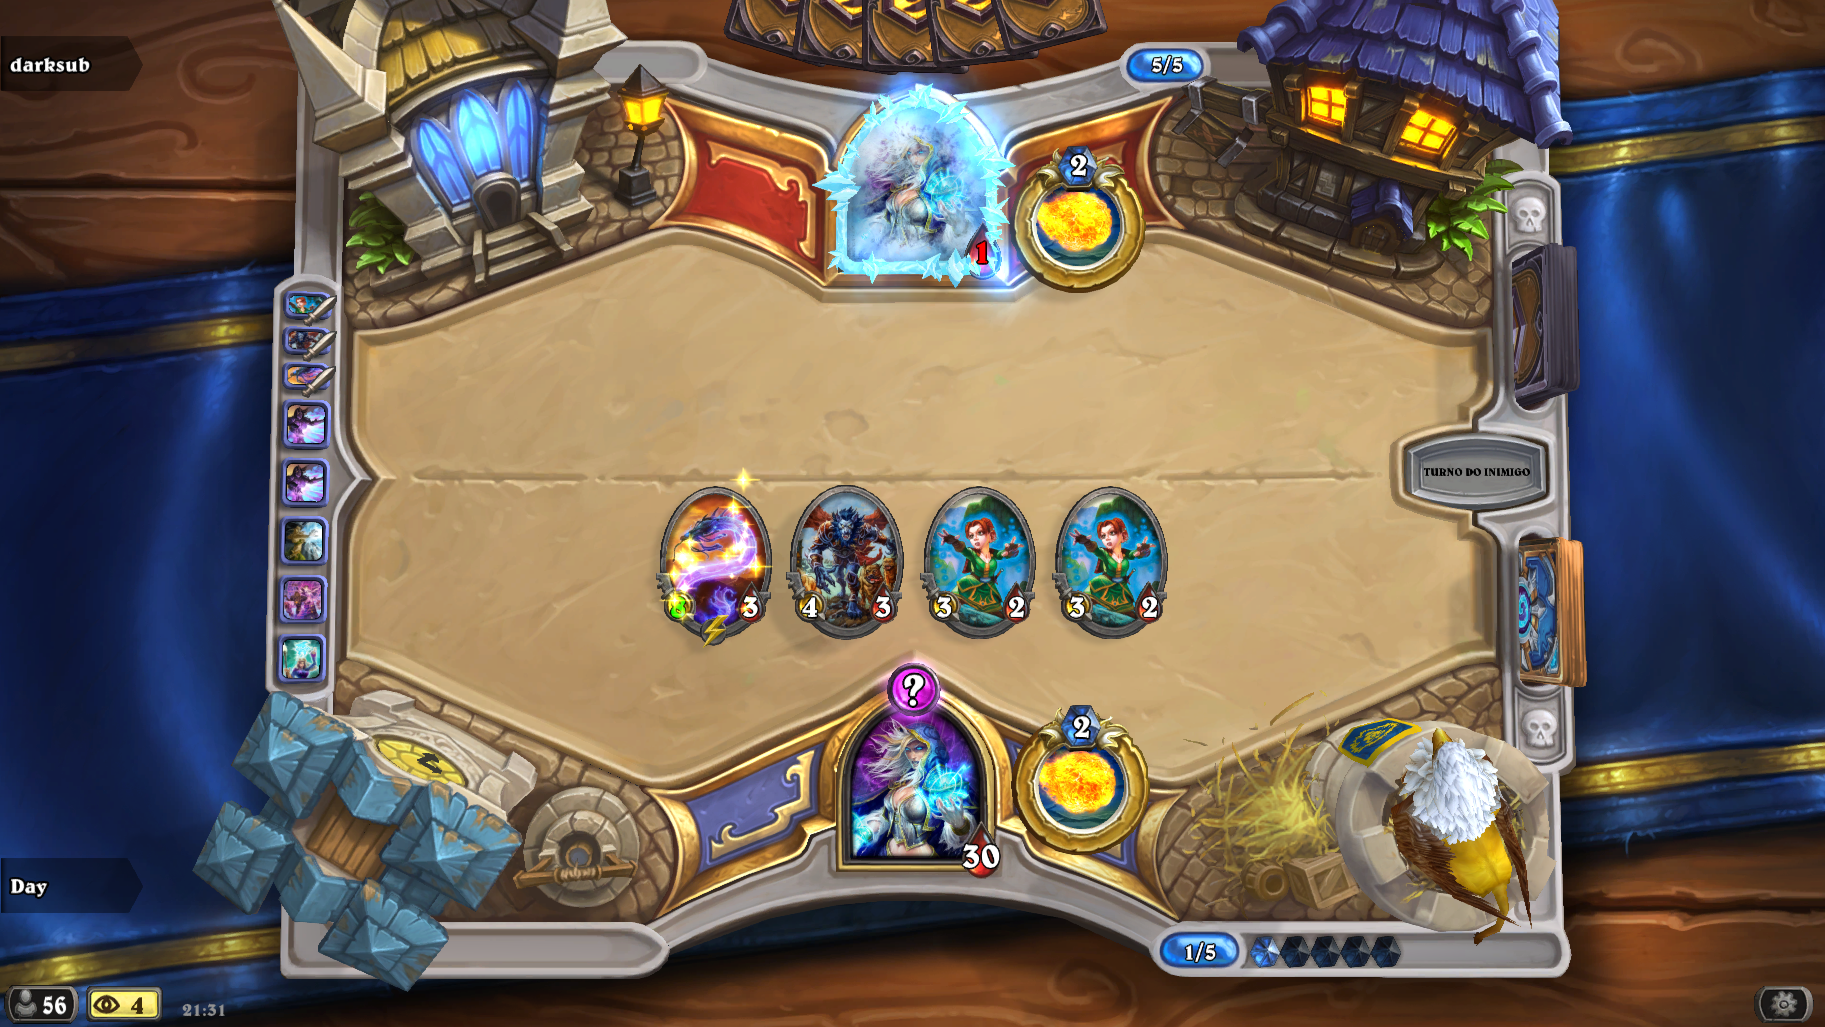 Hearthstone Screenshot 04-10-16 21.31.25